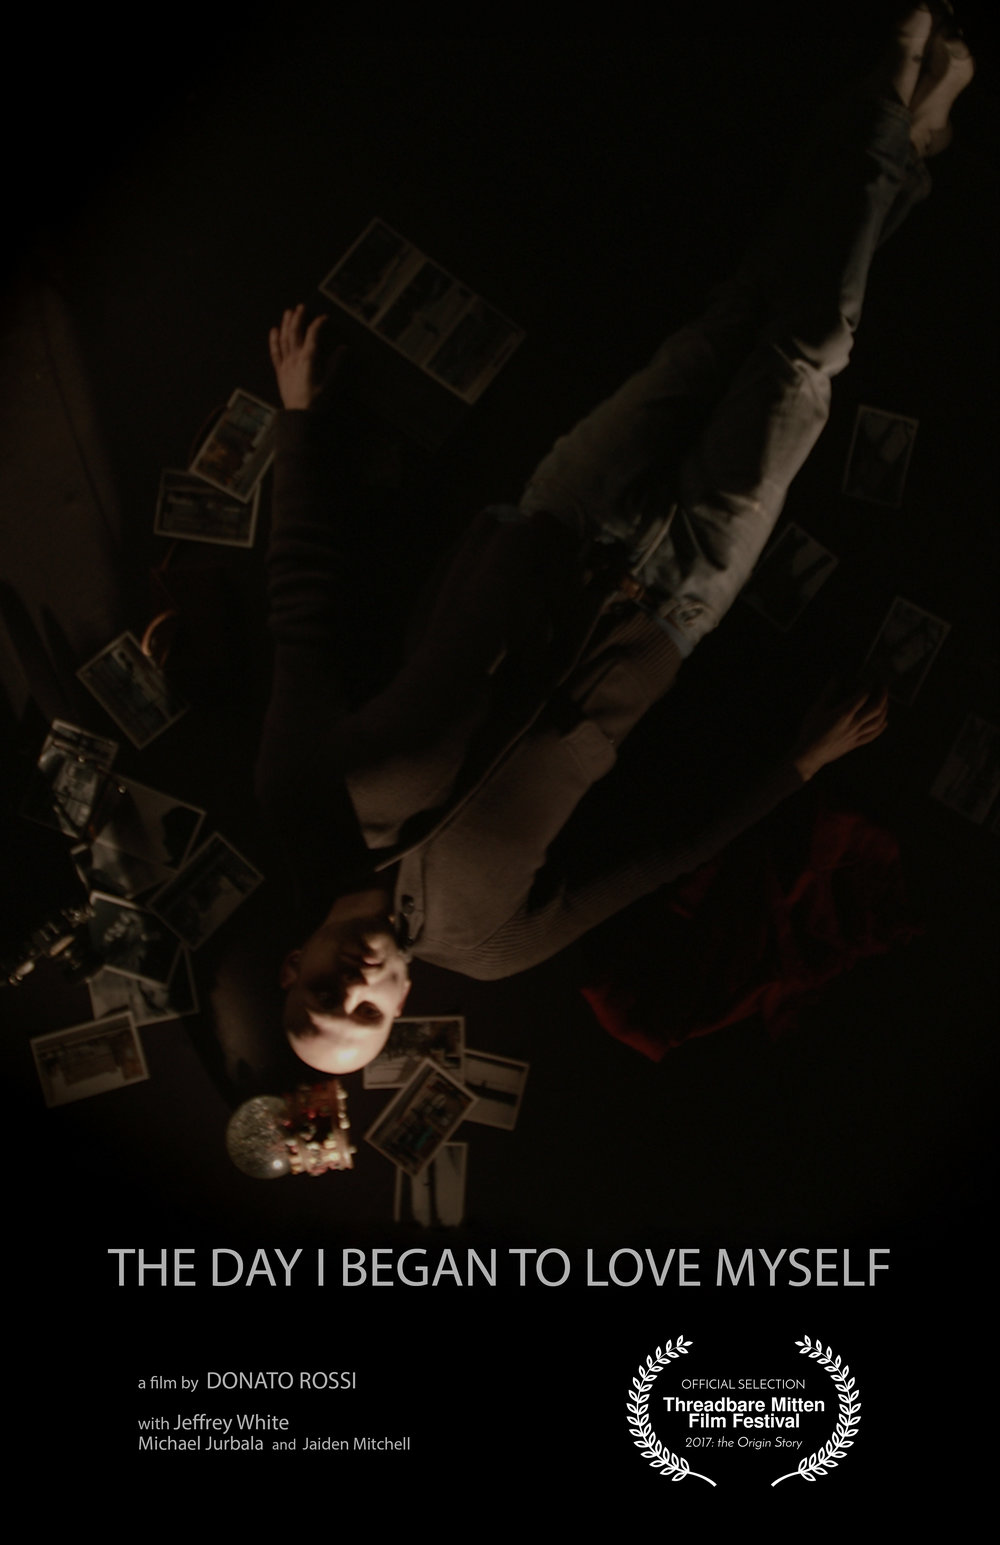 POSTER_the day i began to love myself poster.jpg